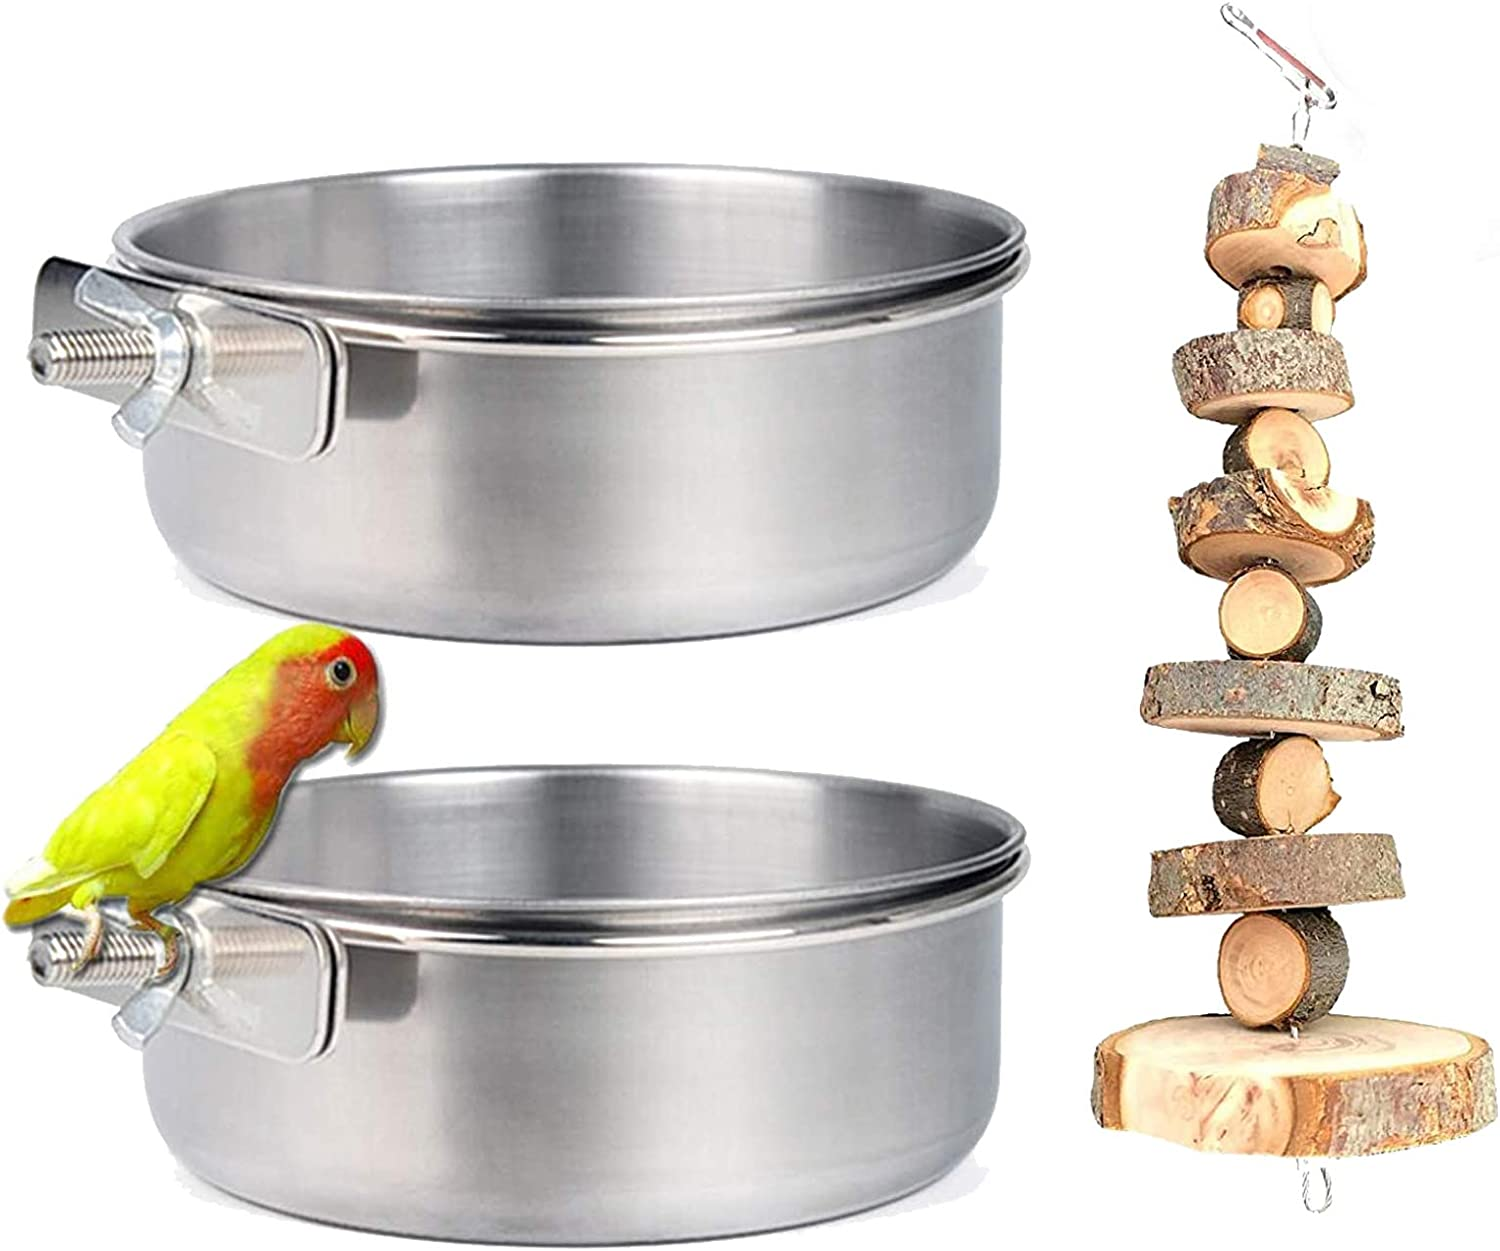 VCZONE 2 Pack Bird Feeding Dish Cups Stainless Steel Food Bowl Clamp Holder Parrot Bird Cage Water Bowl and 1 Pack Natural Apple Wood Grass Cake (2 Cups + 1 Apple Wood Grass Cake)